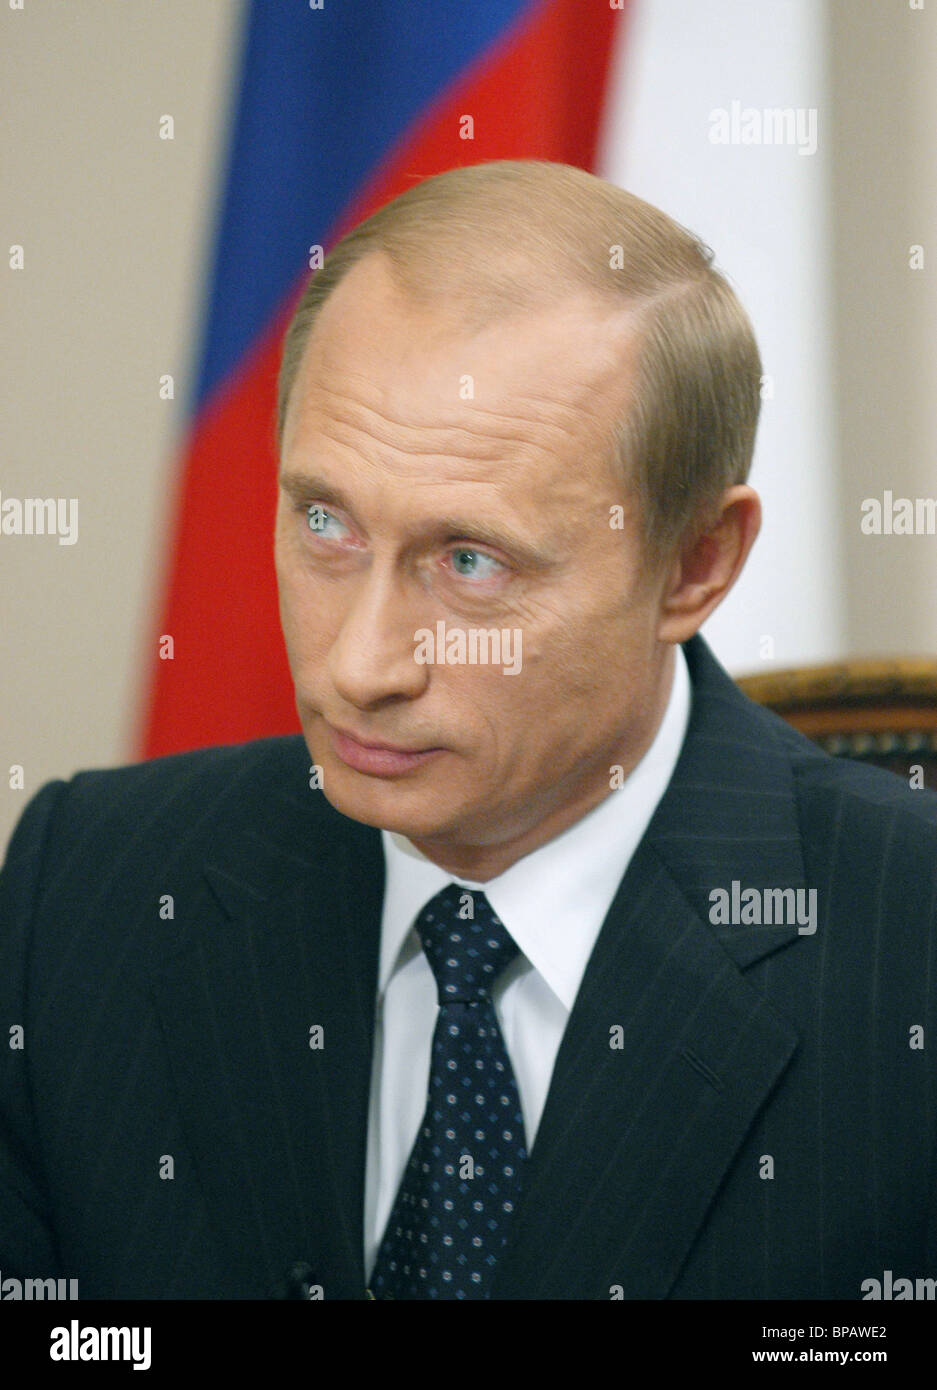 President of Russia Vladimir Putin gave an interview to Russian TV channels - Stock Image